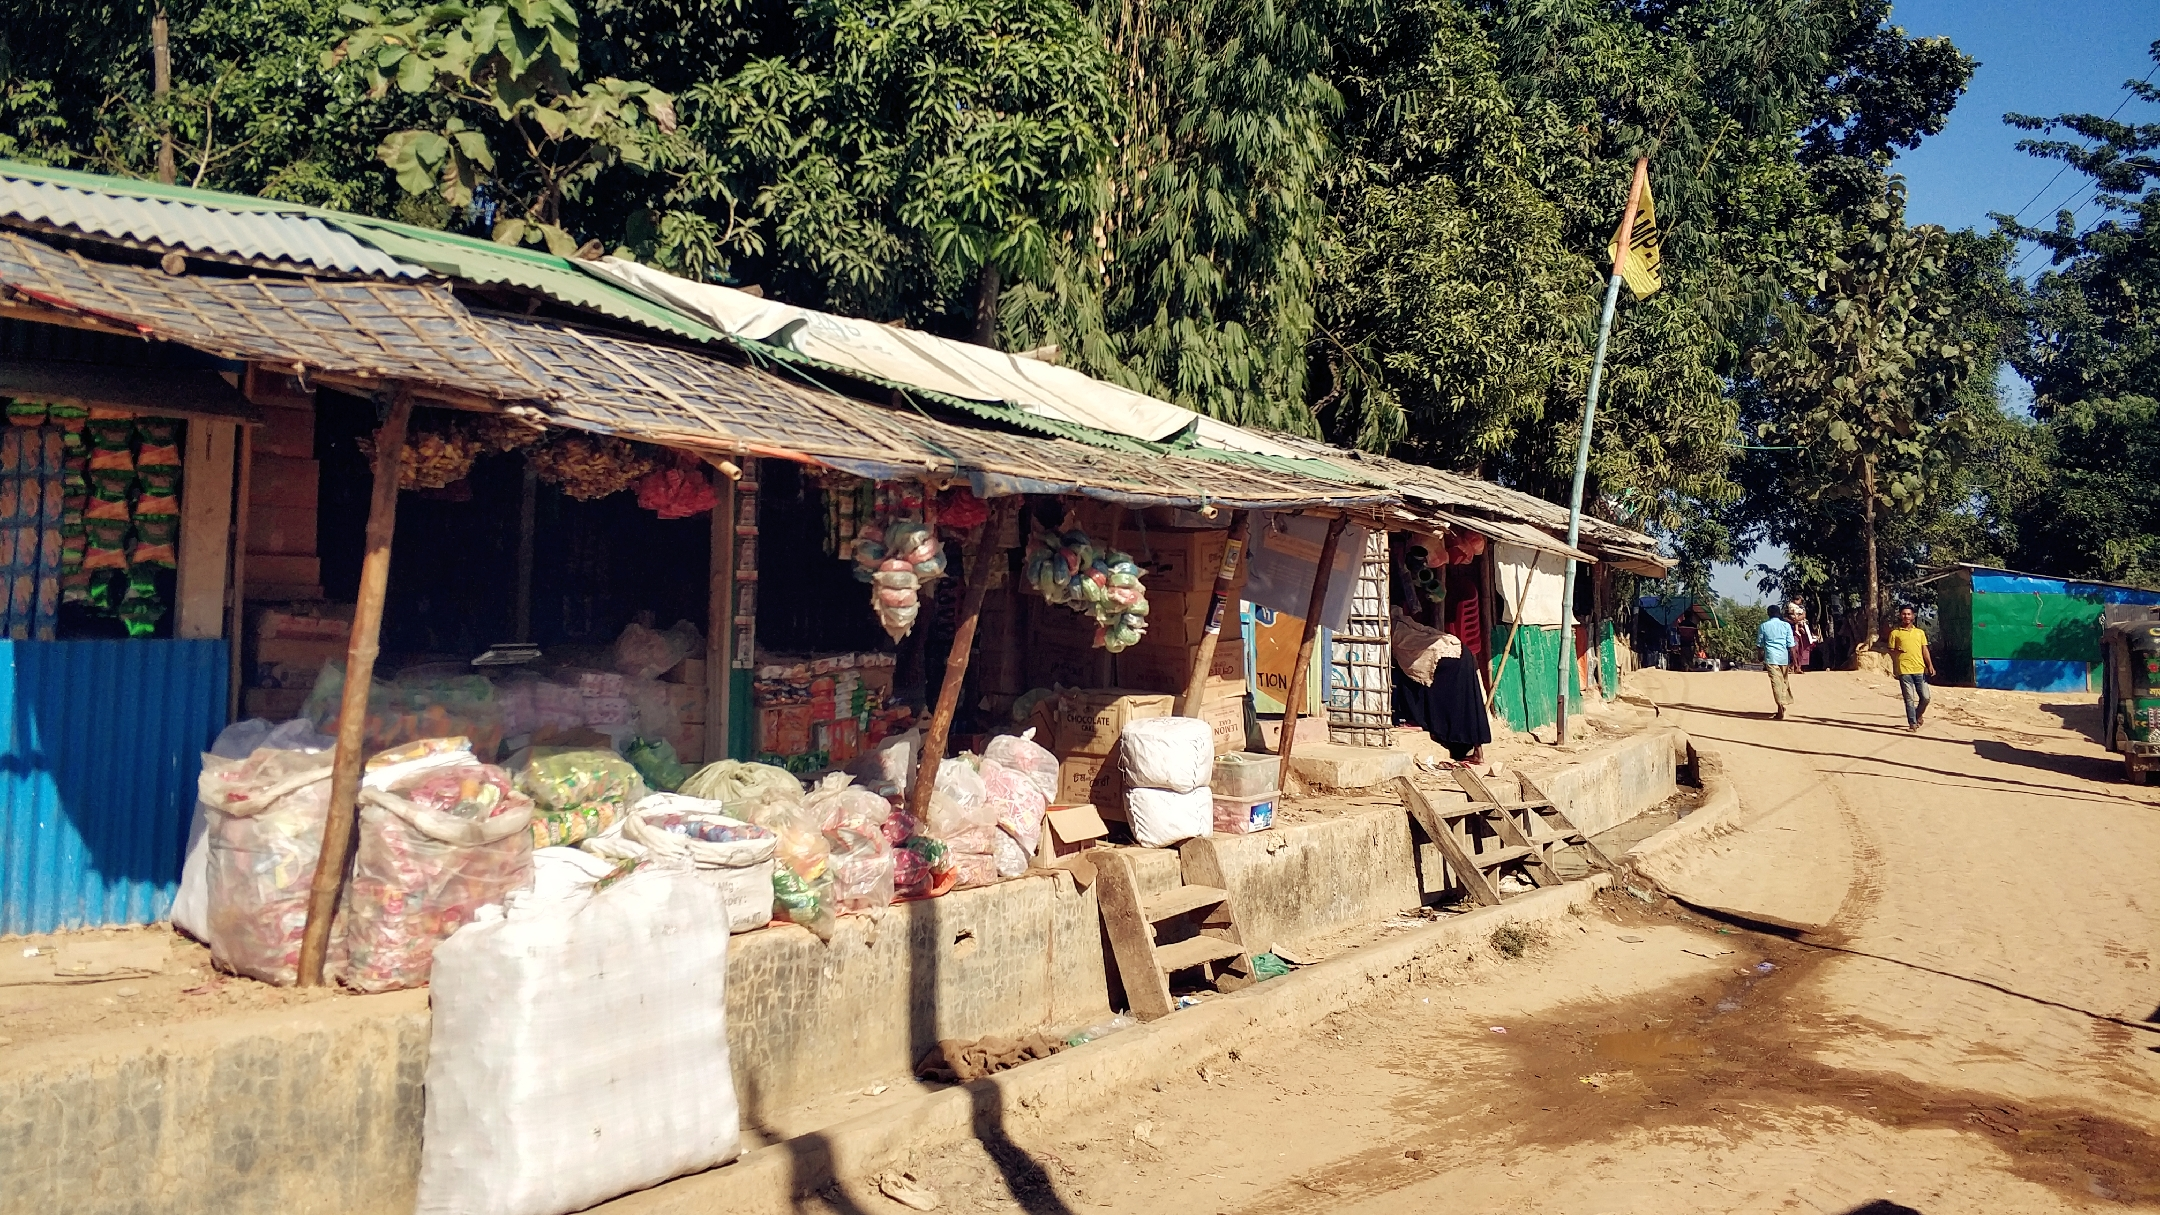 Some shops owned by locals and refugees inside Camp 14 kutupalong